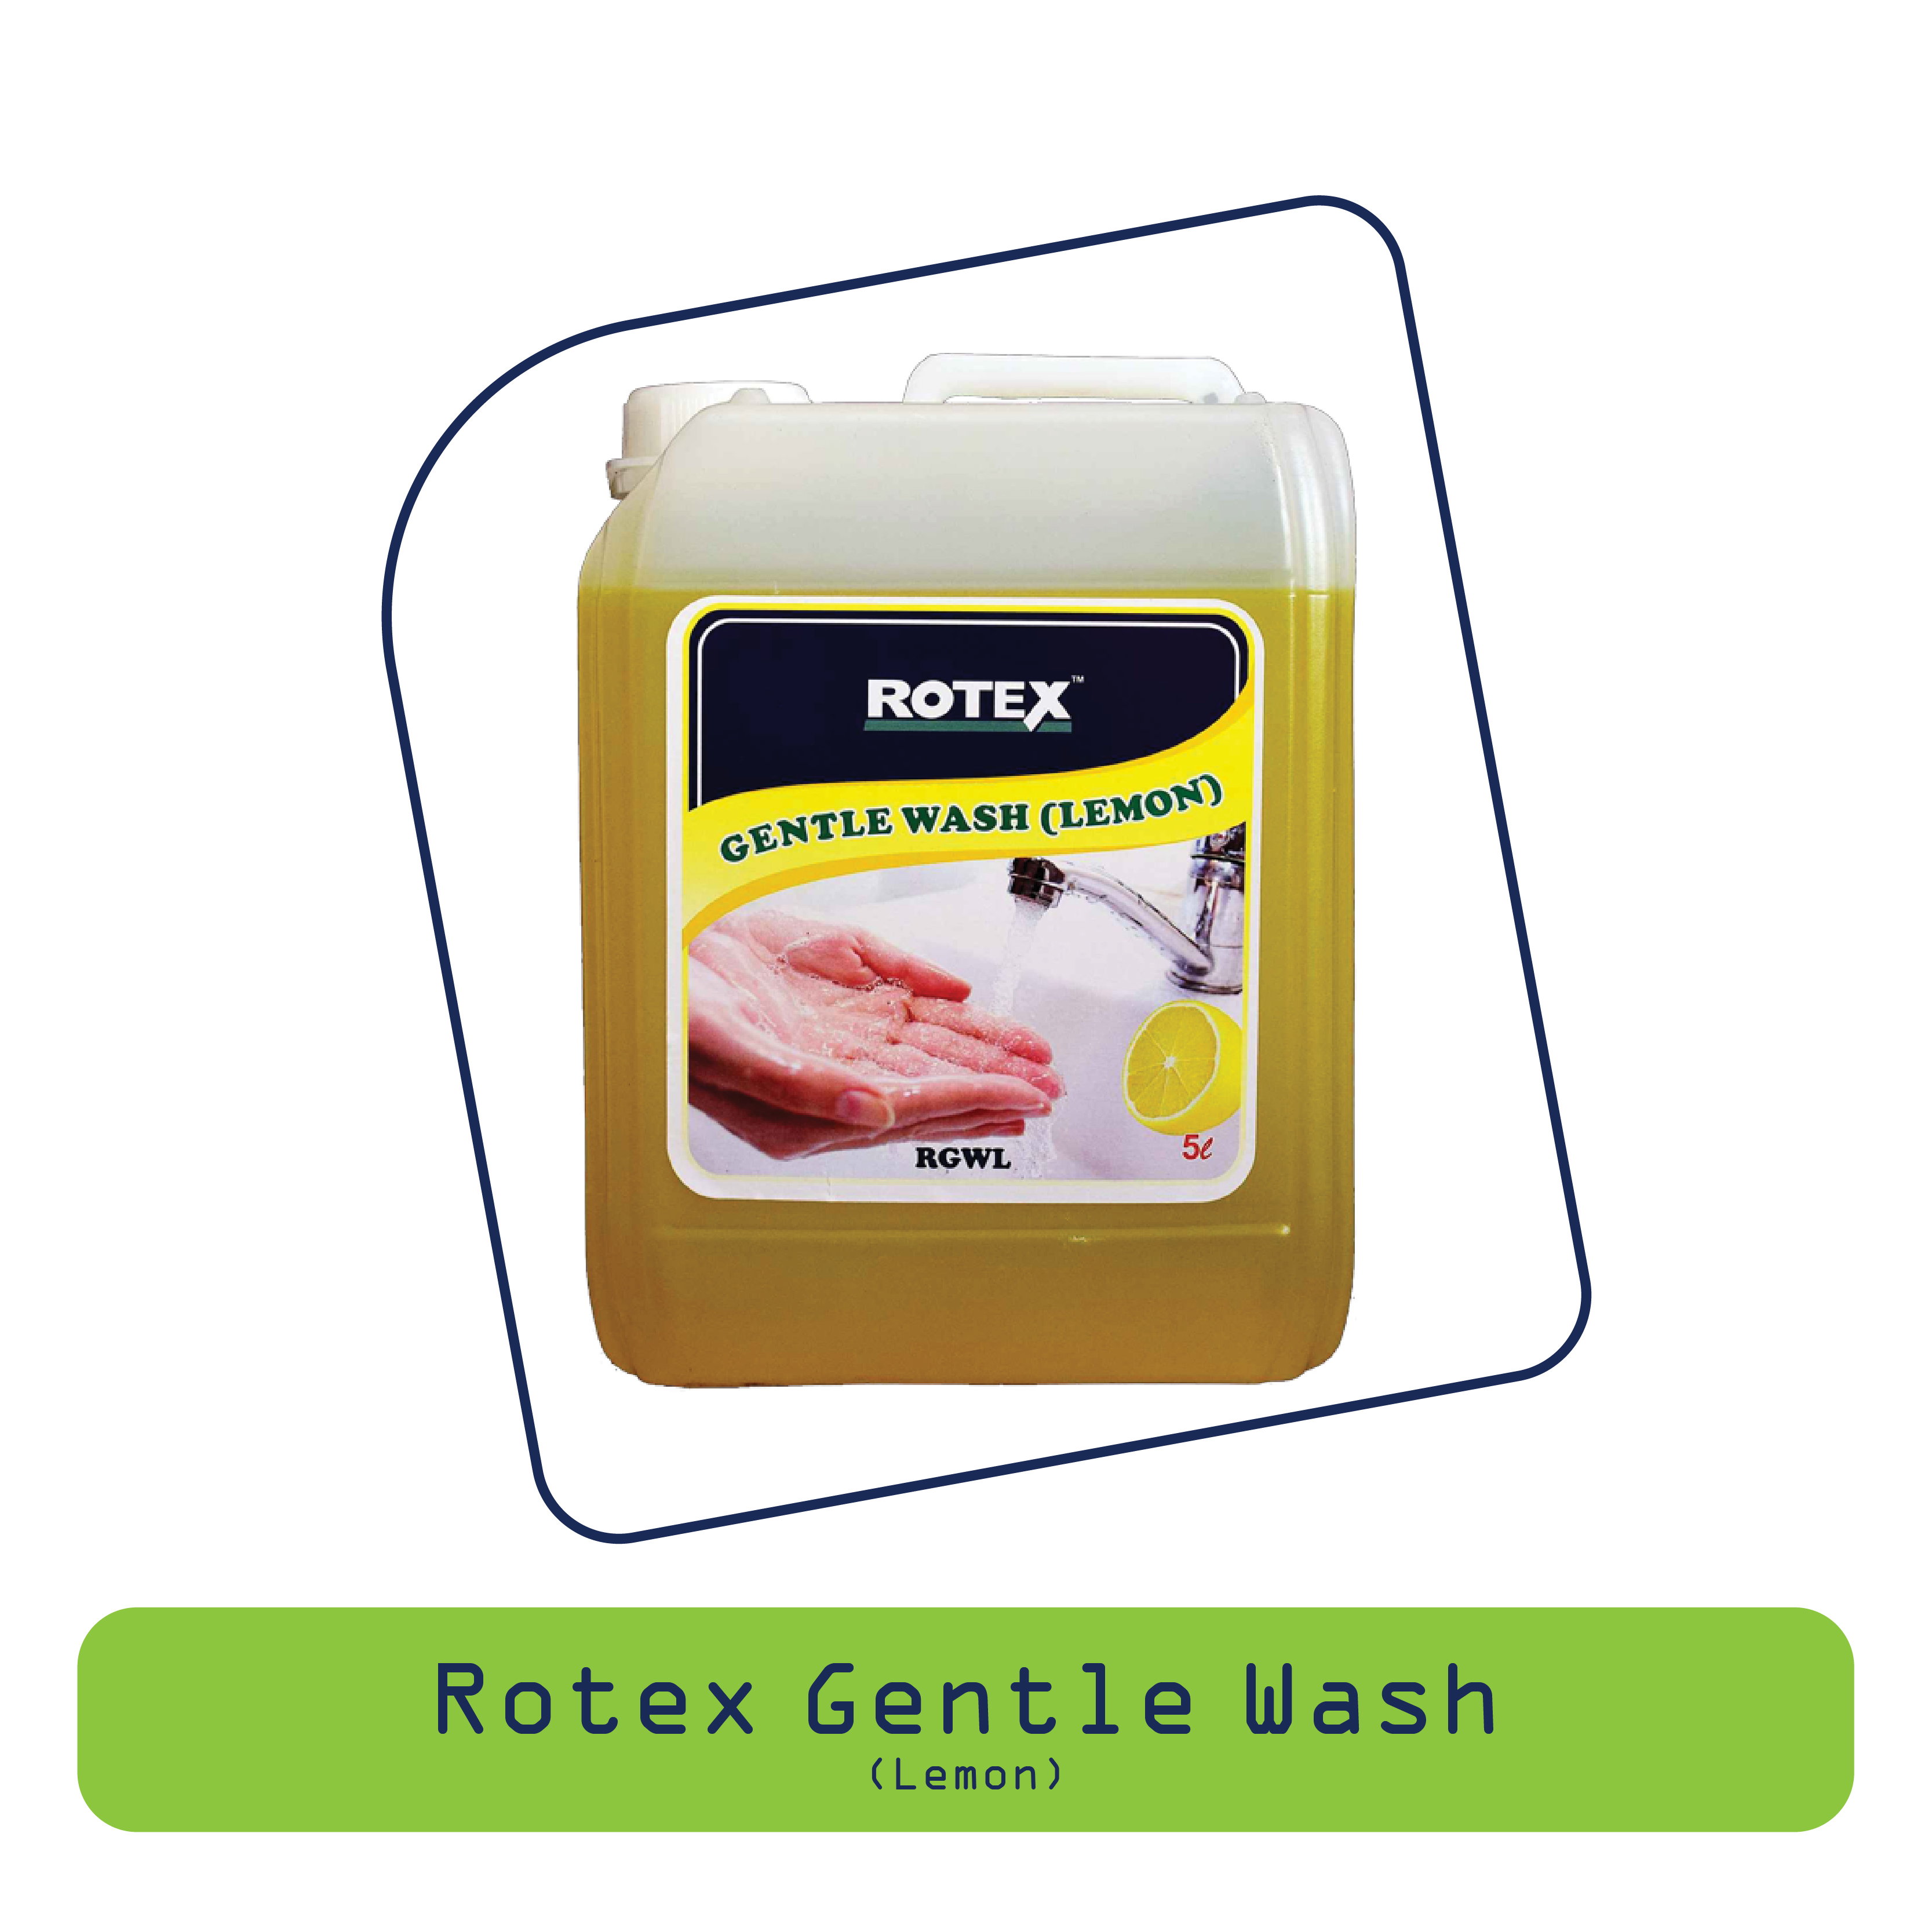 Rotex Gentle Wash (Lemon)